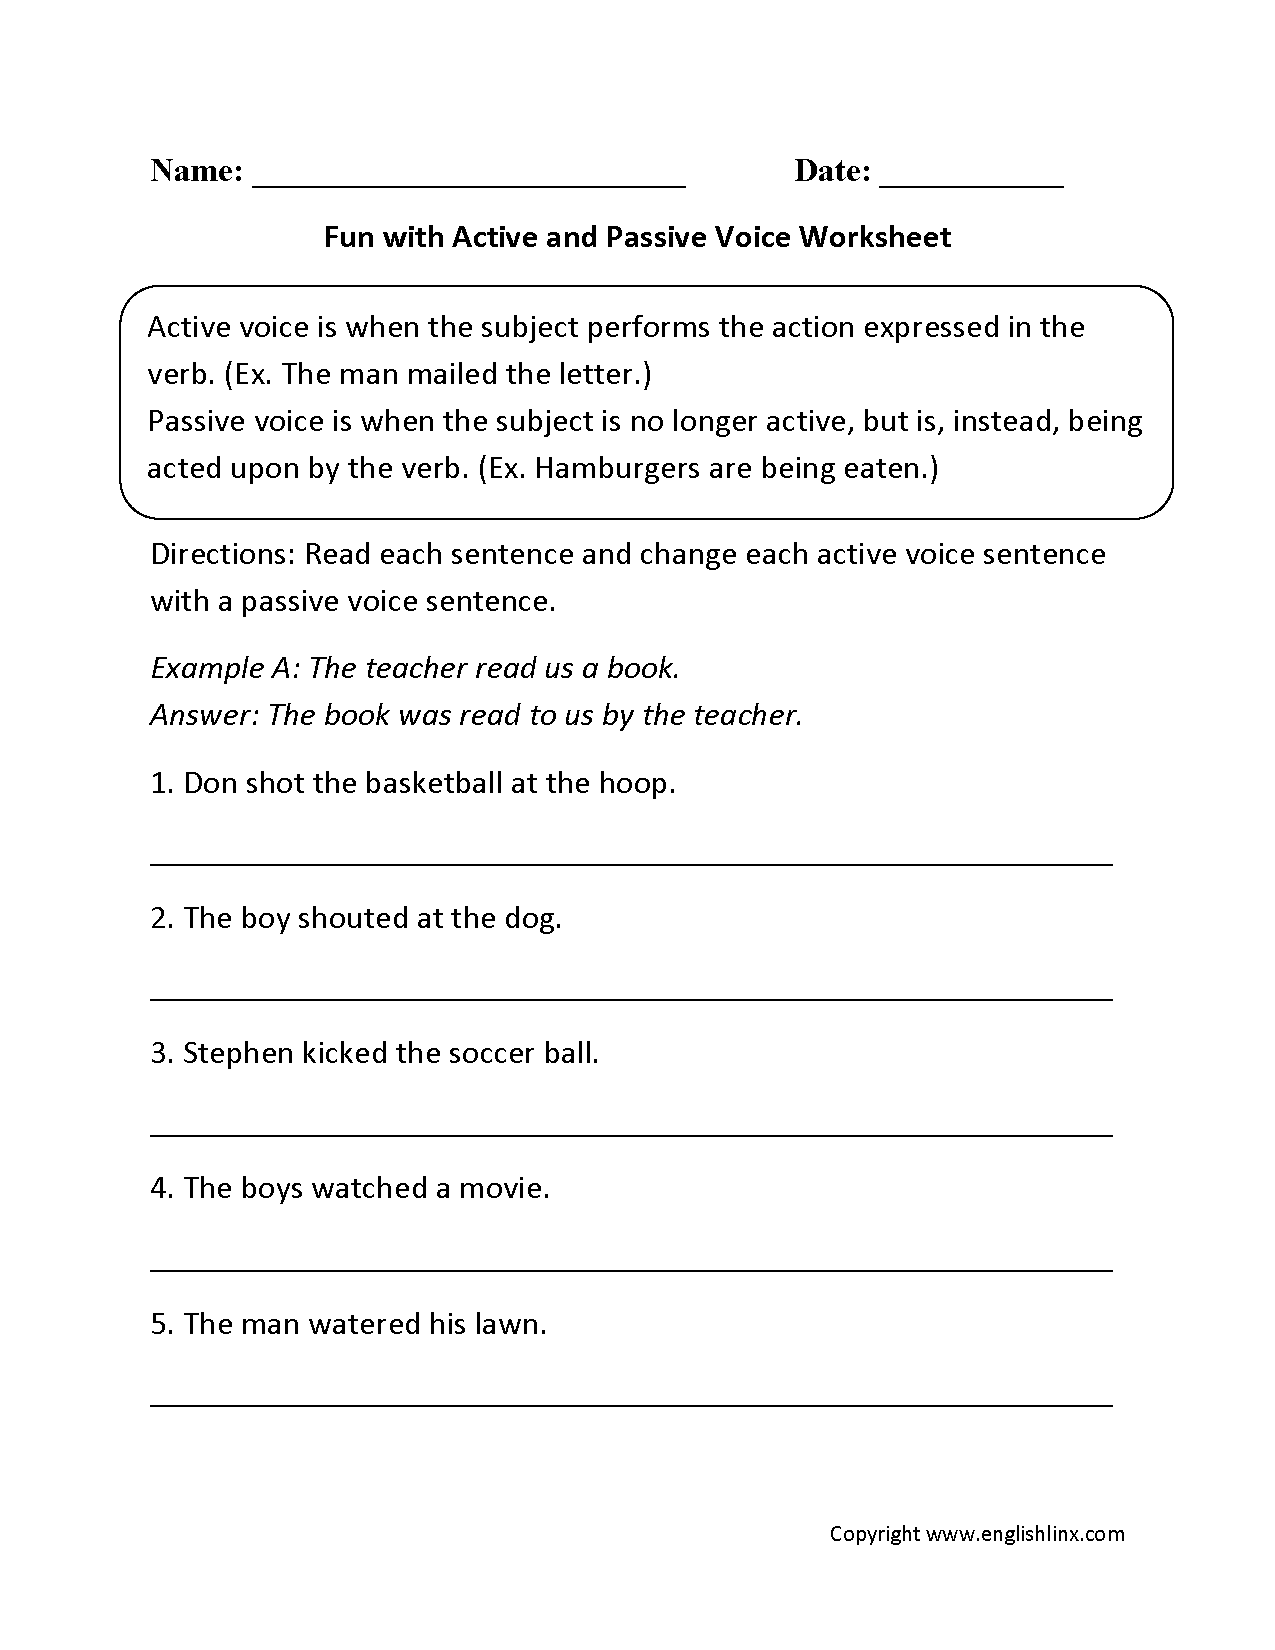 Worksheets Active And Passive Voice Worksheets With Answers Pdf englishlinx com active and passive voice worksheets worksheets